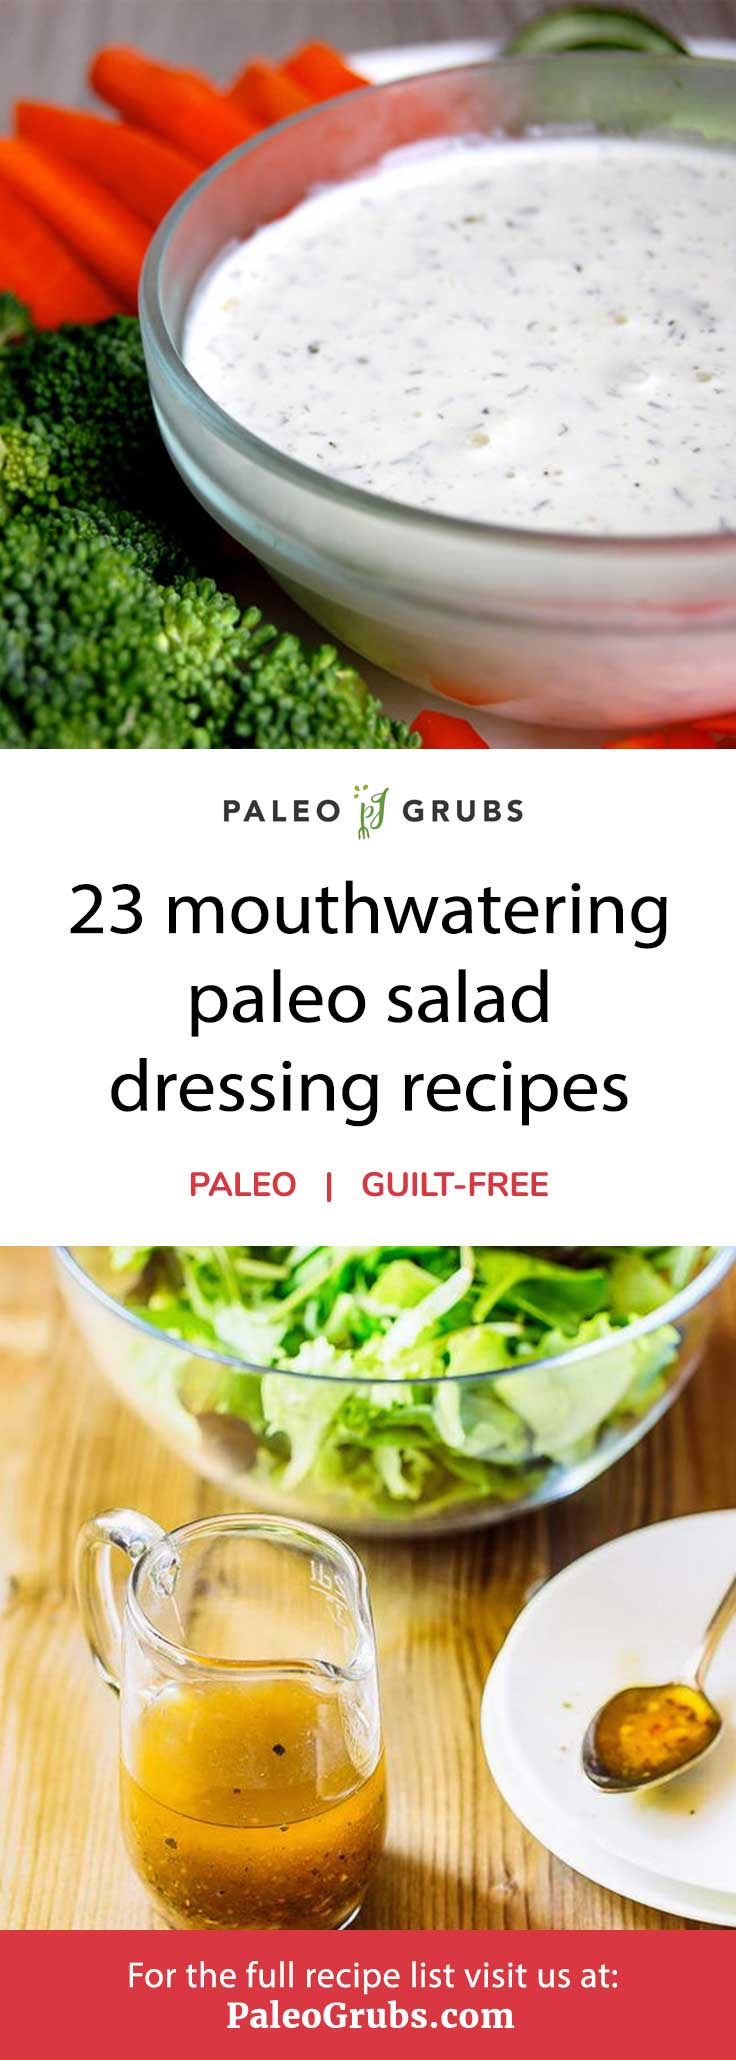 Try one of these out of this world dairy-free, paleo-friendly salad dressing recipes.